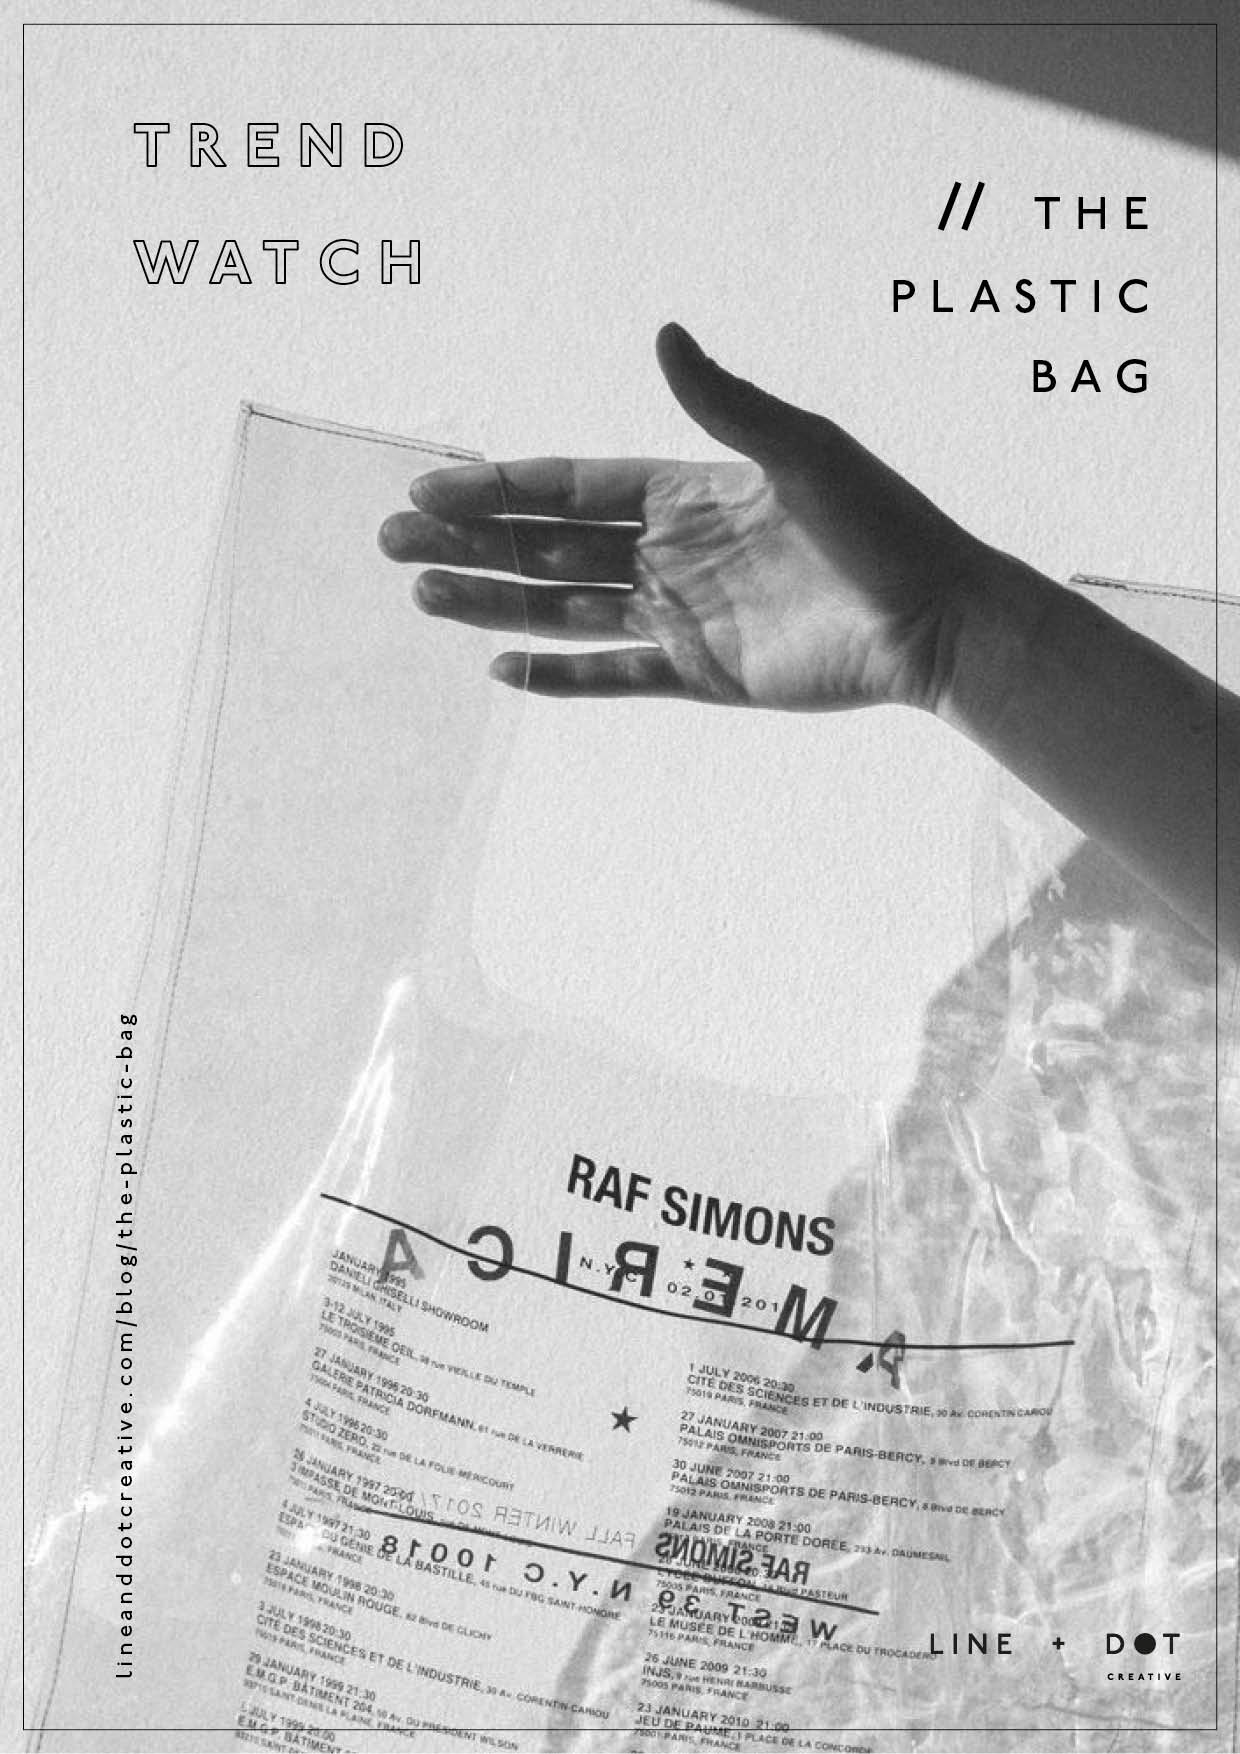 line and dot creative plastic bag trend watch